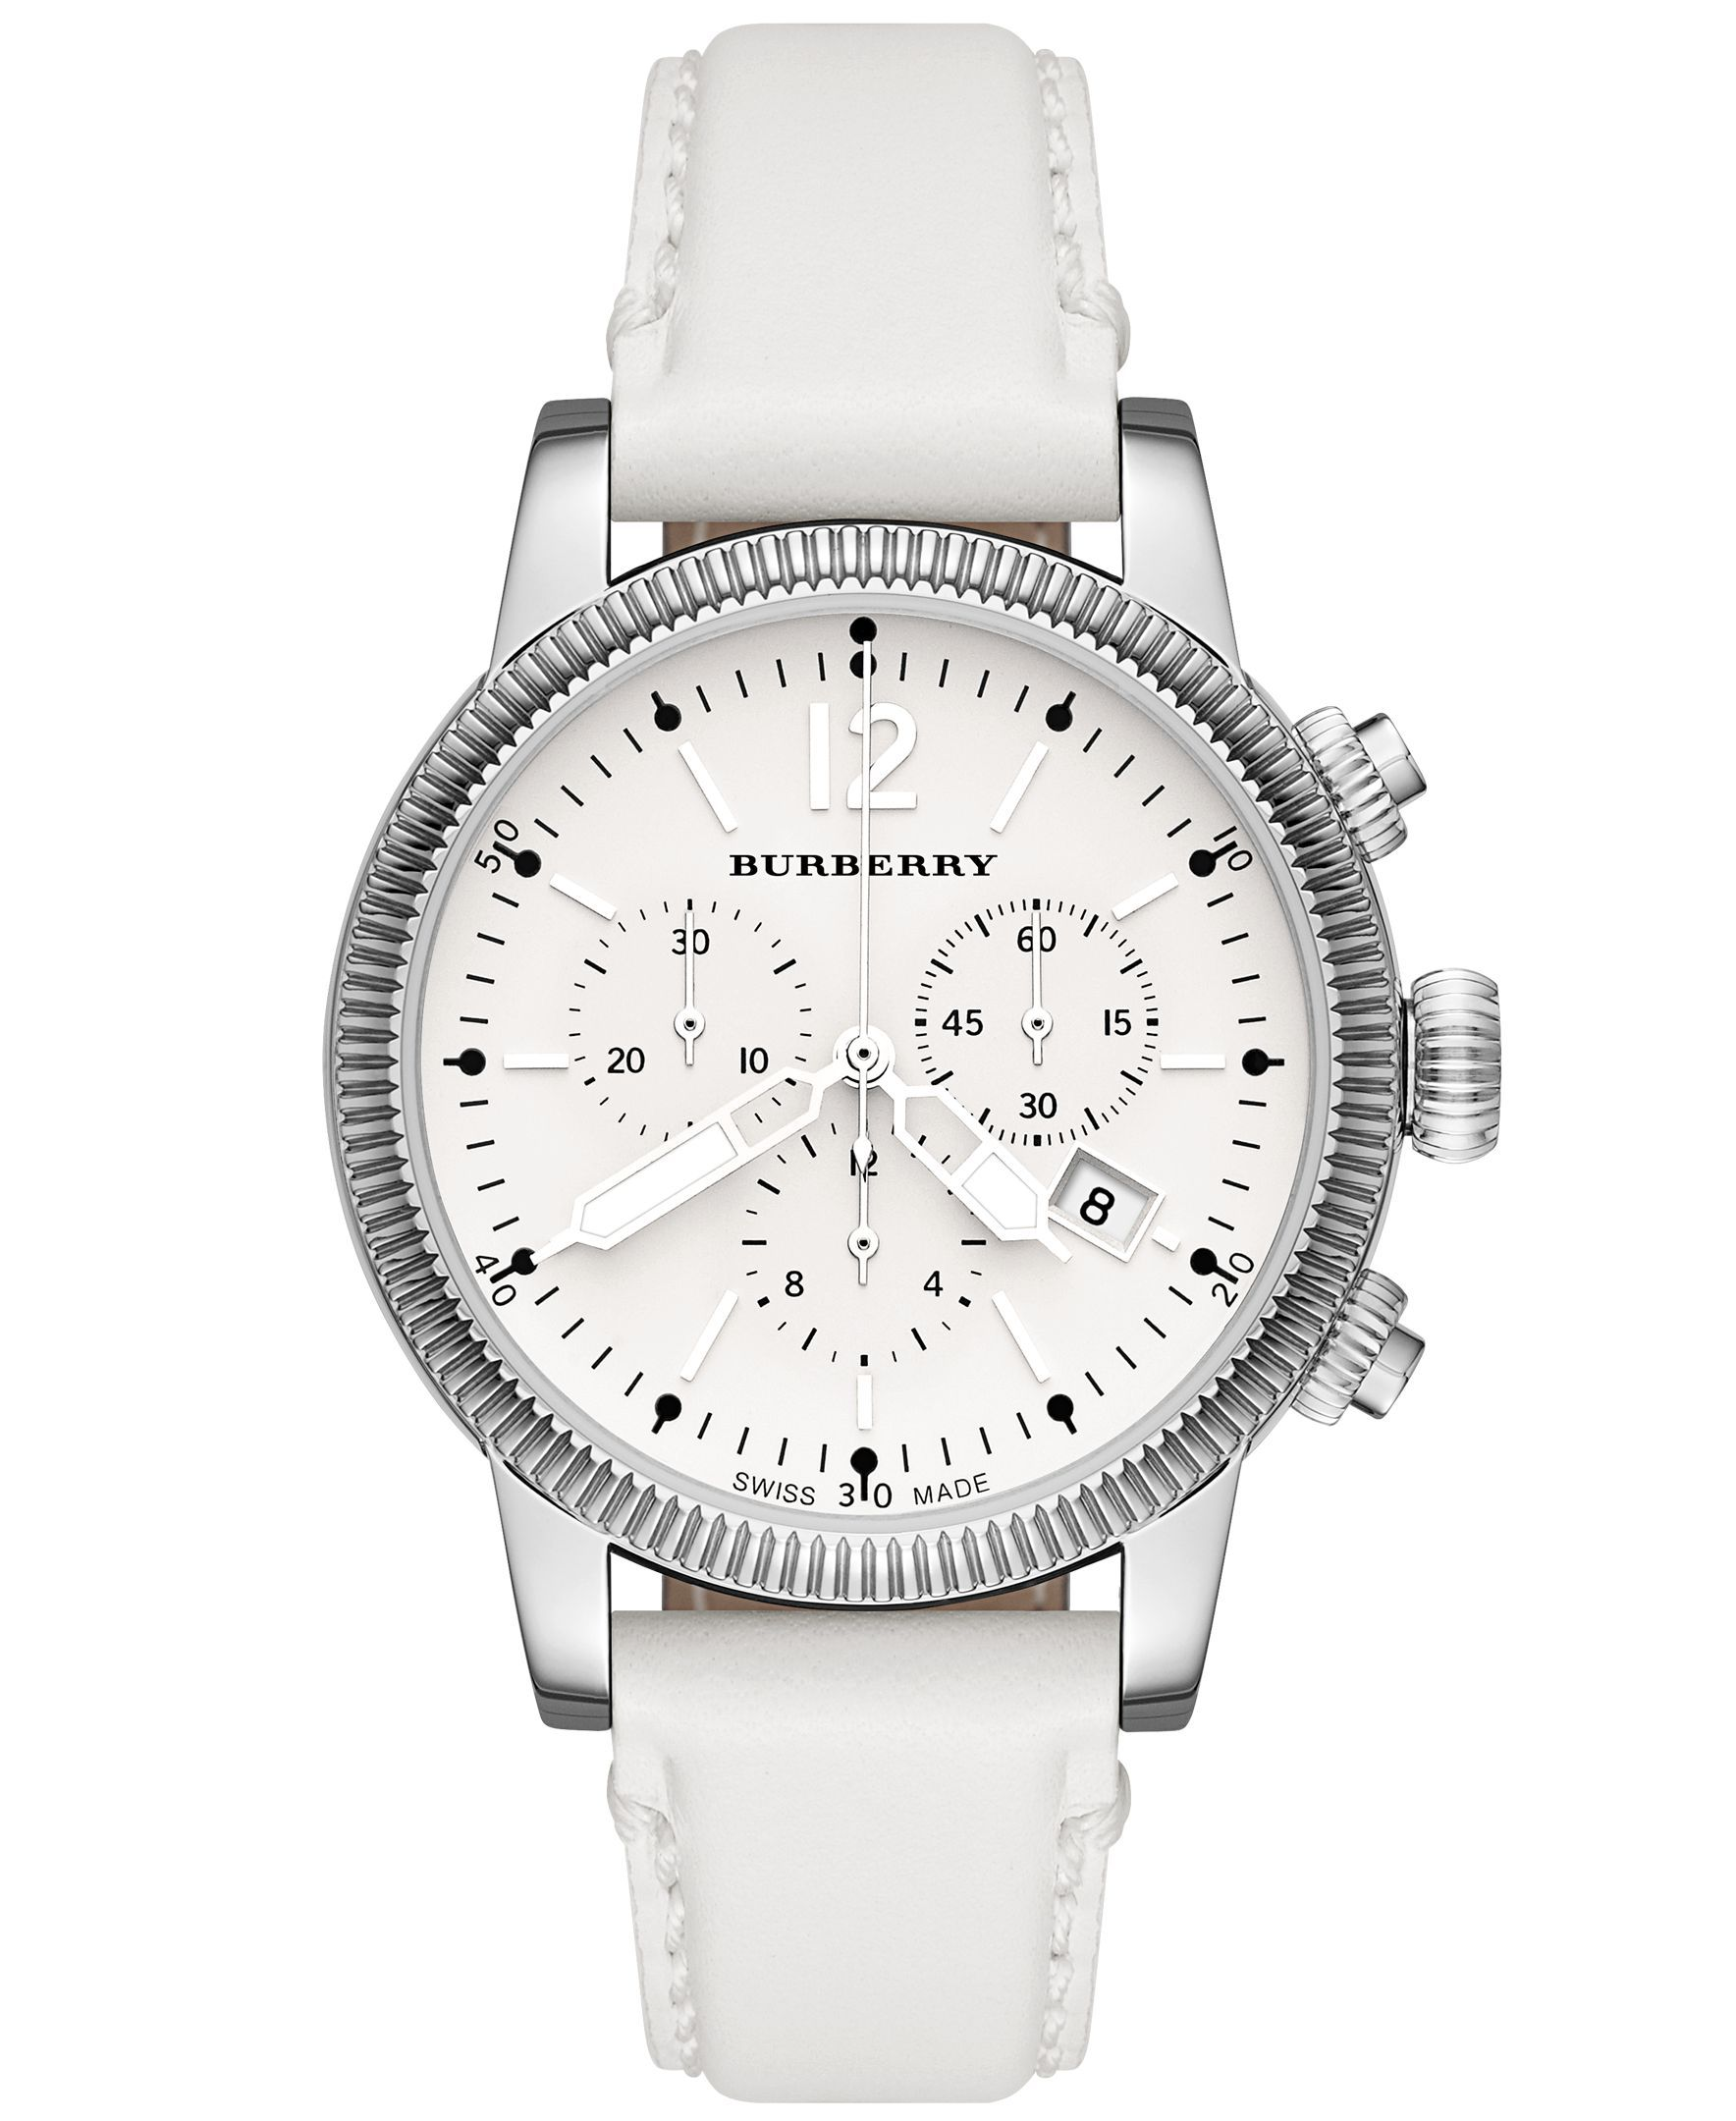 Burberry Watch, Women's Swiss Chronograph White Leather Strap 42mm BU7821